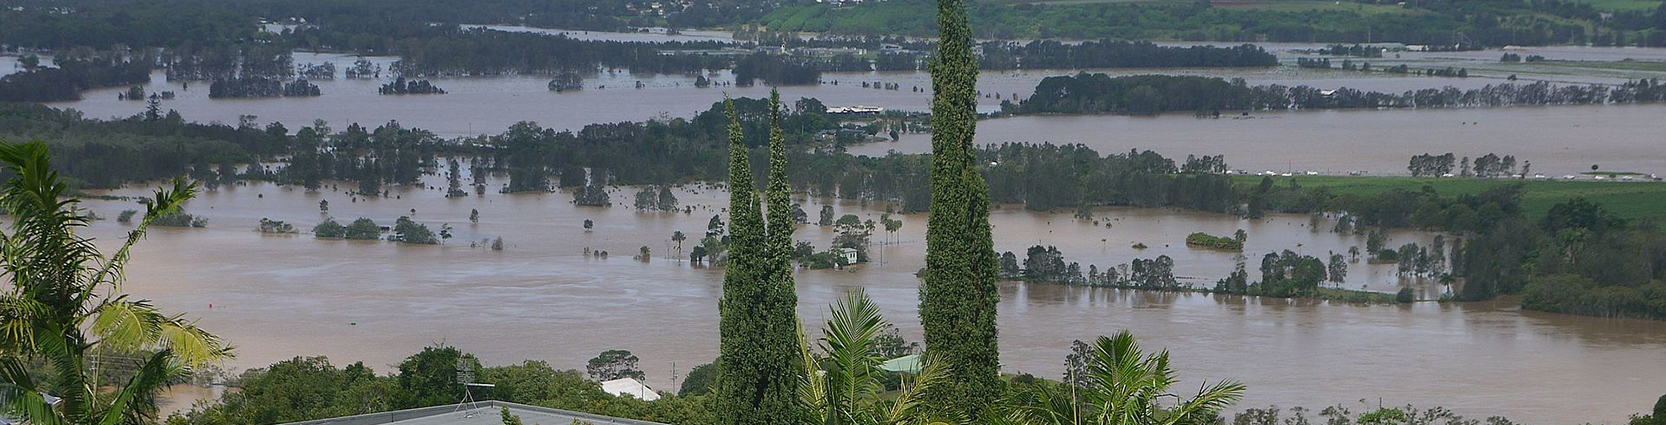 Tweed_River_Floods_from_Terranora.jpg